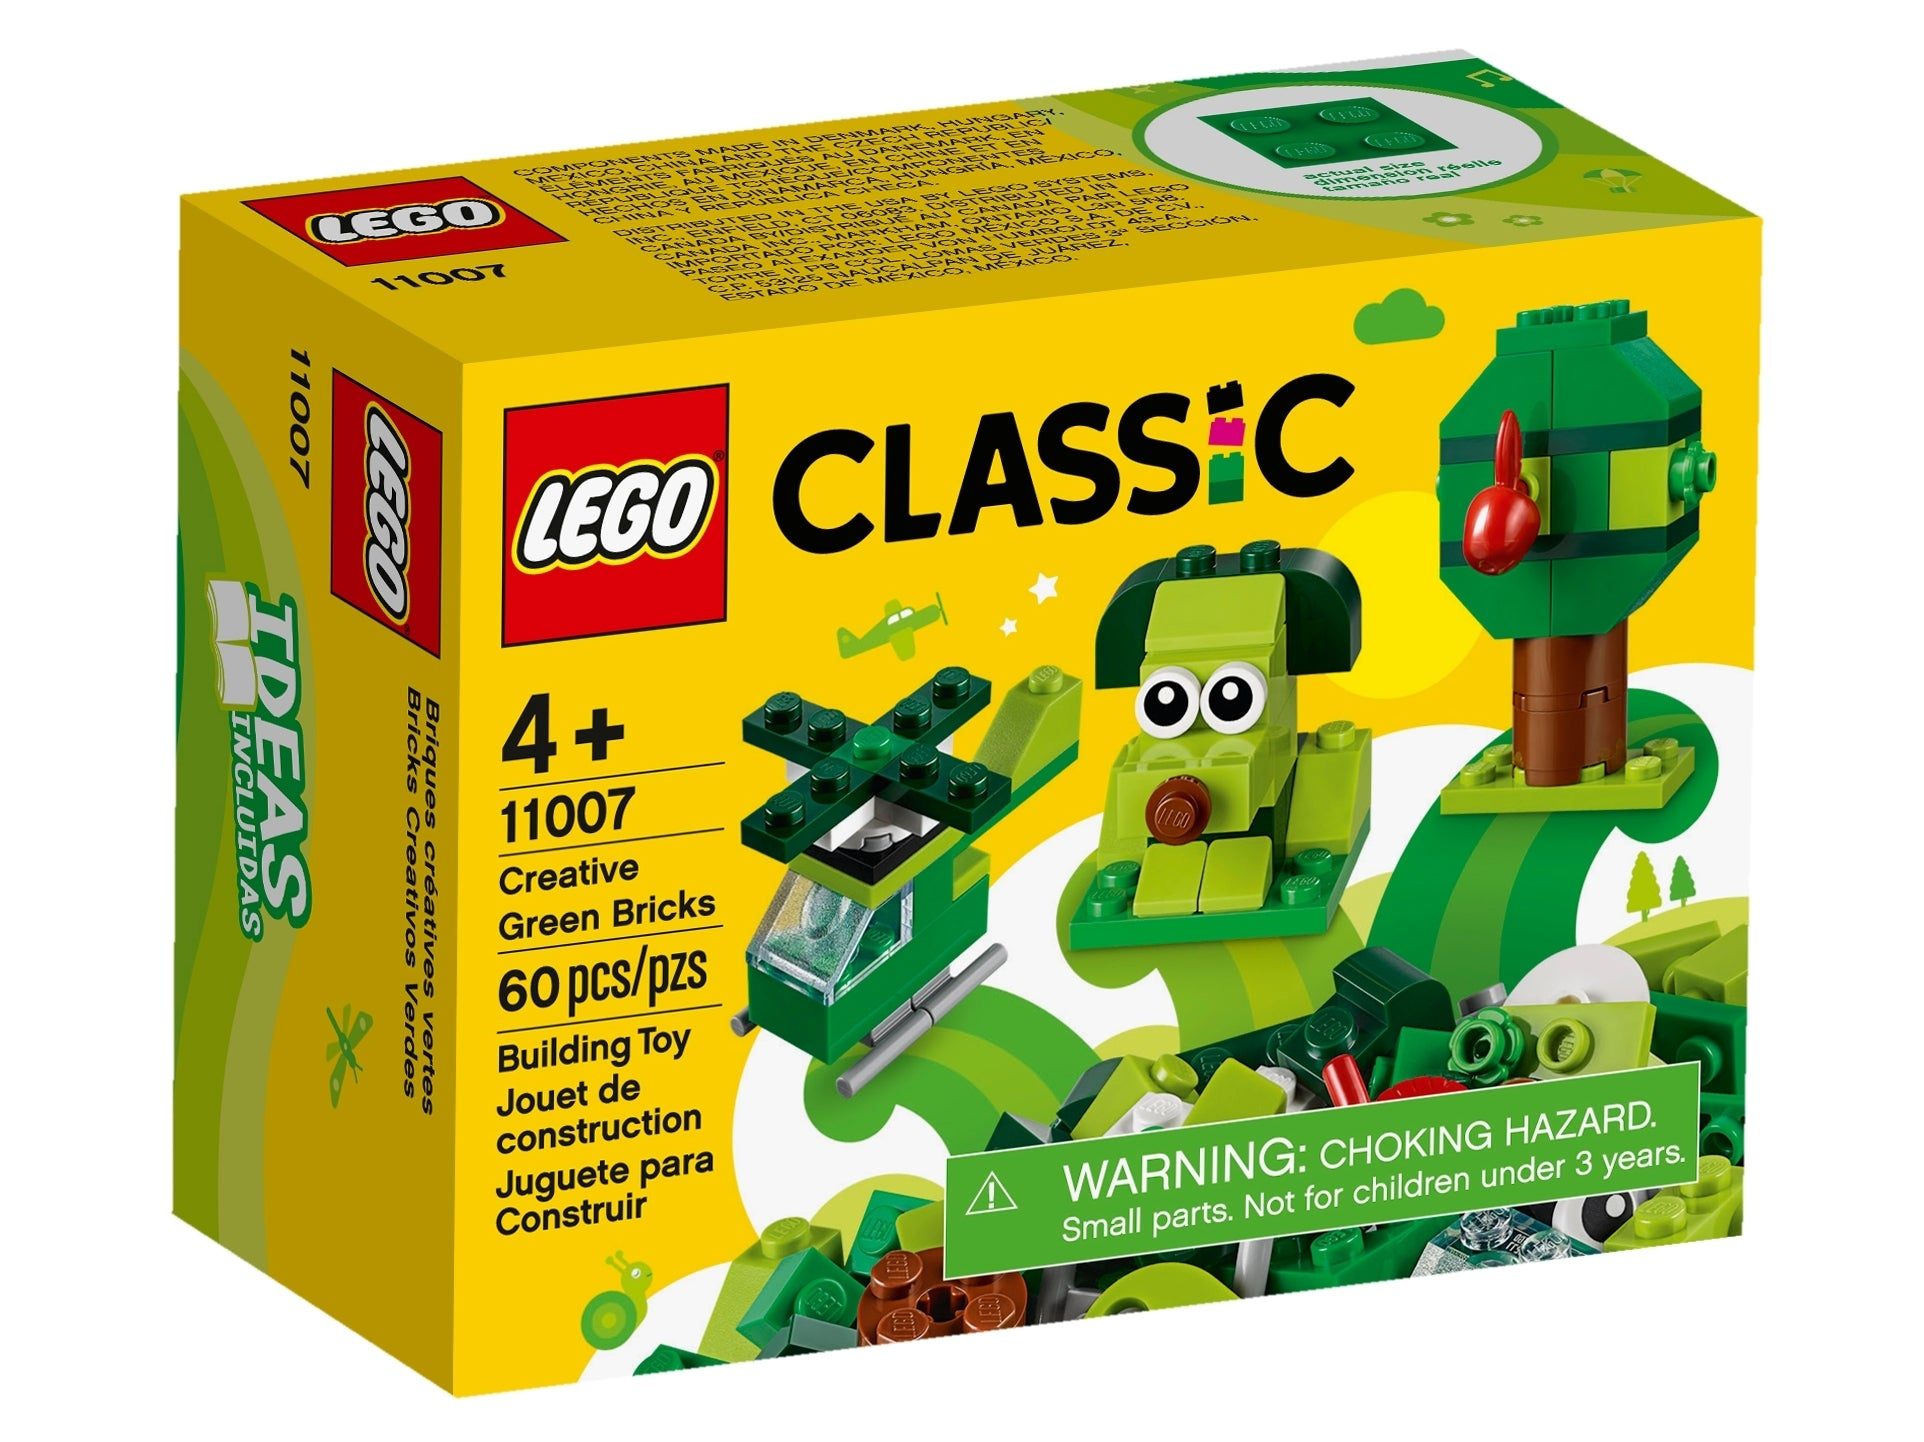 LEGO Classic - Creative Green Bricks